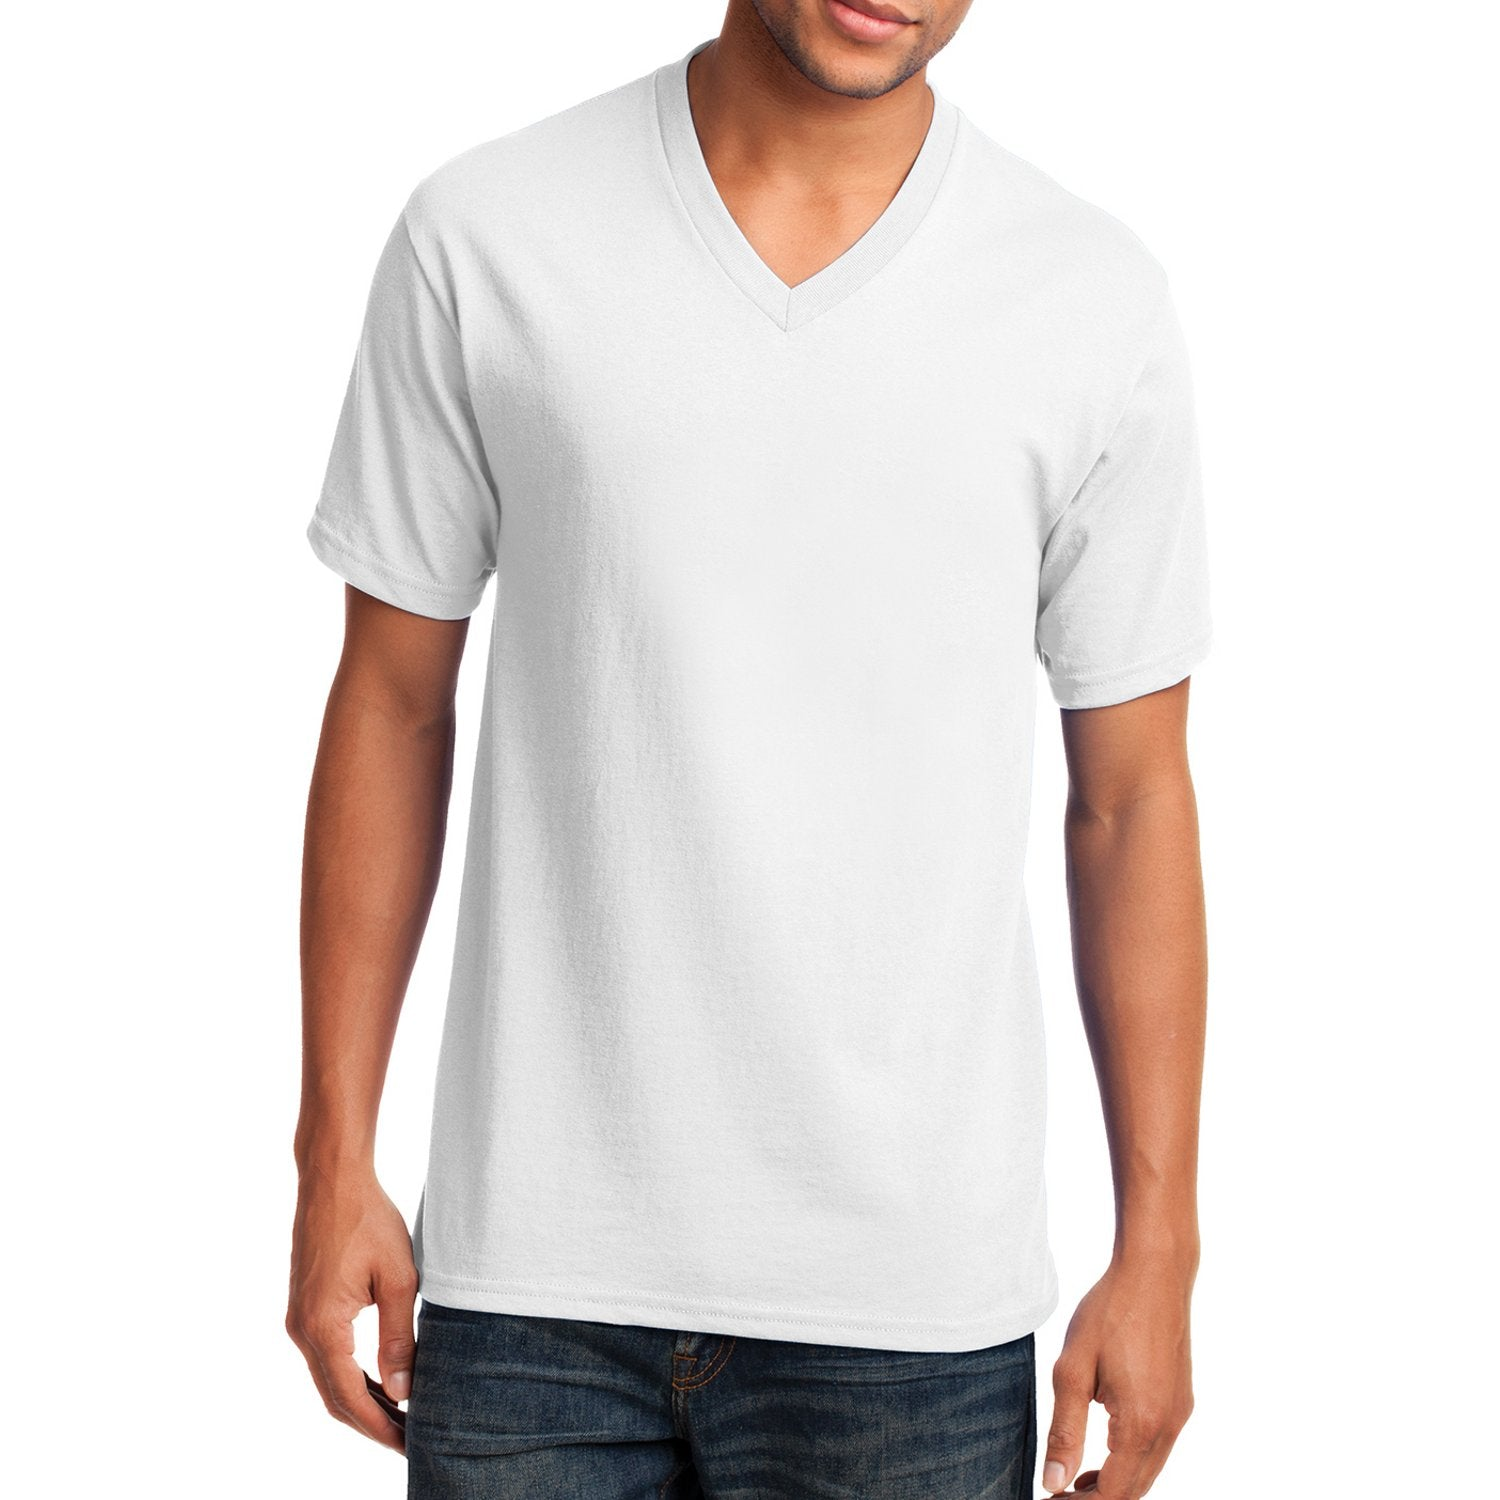 Men's Core Cotton V-Neck Tee White - Front